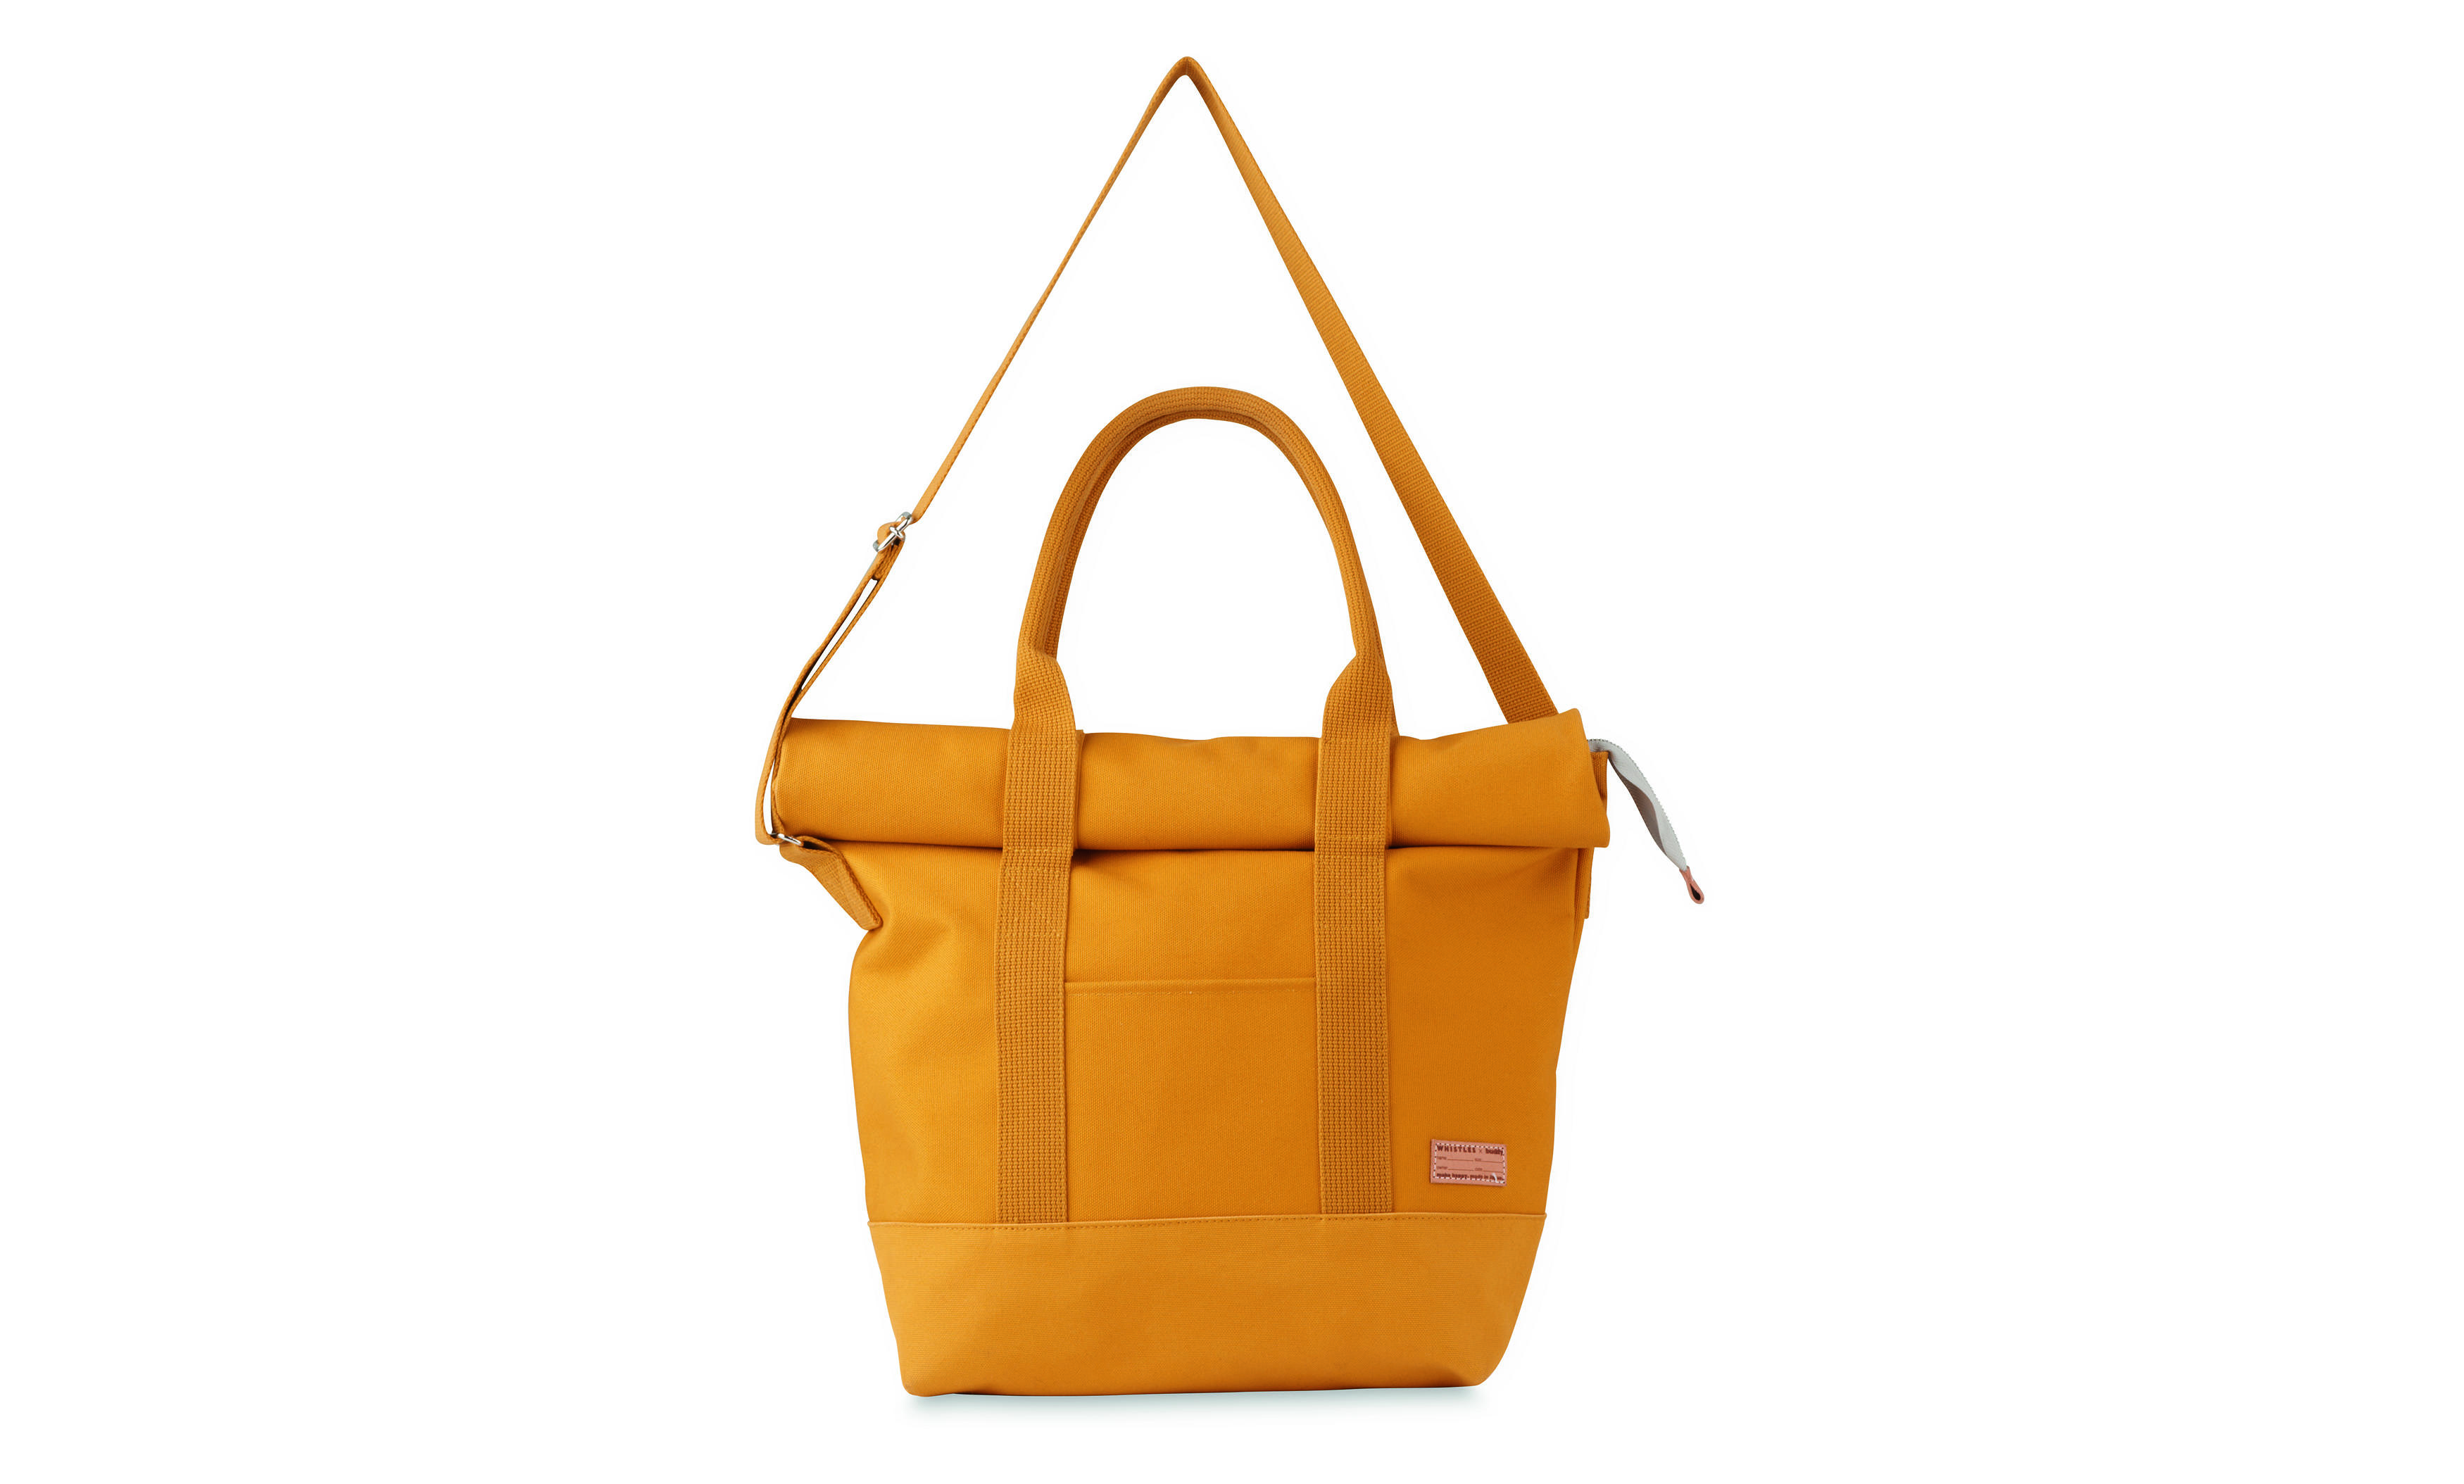 whistles-cookie-roll-top-tote-bag-yellow_03.jpg